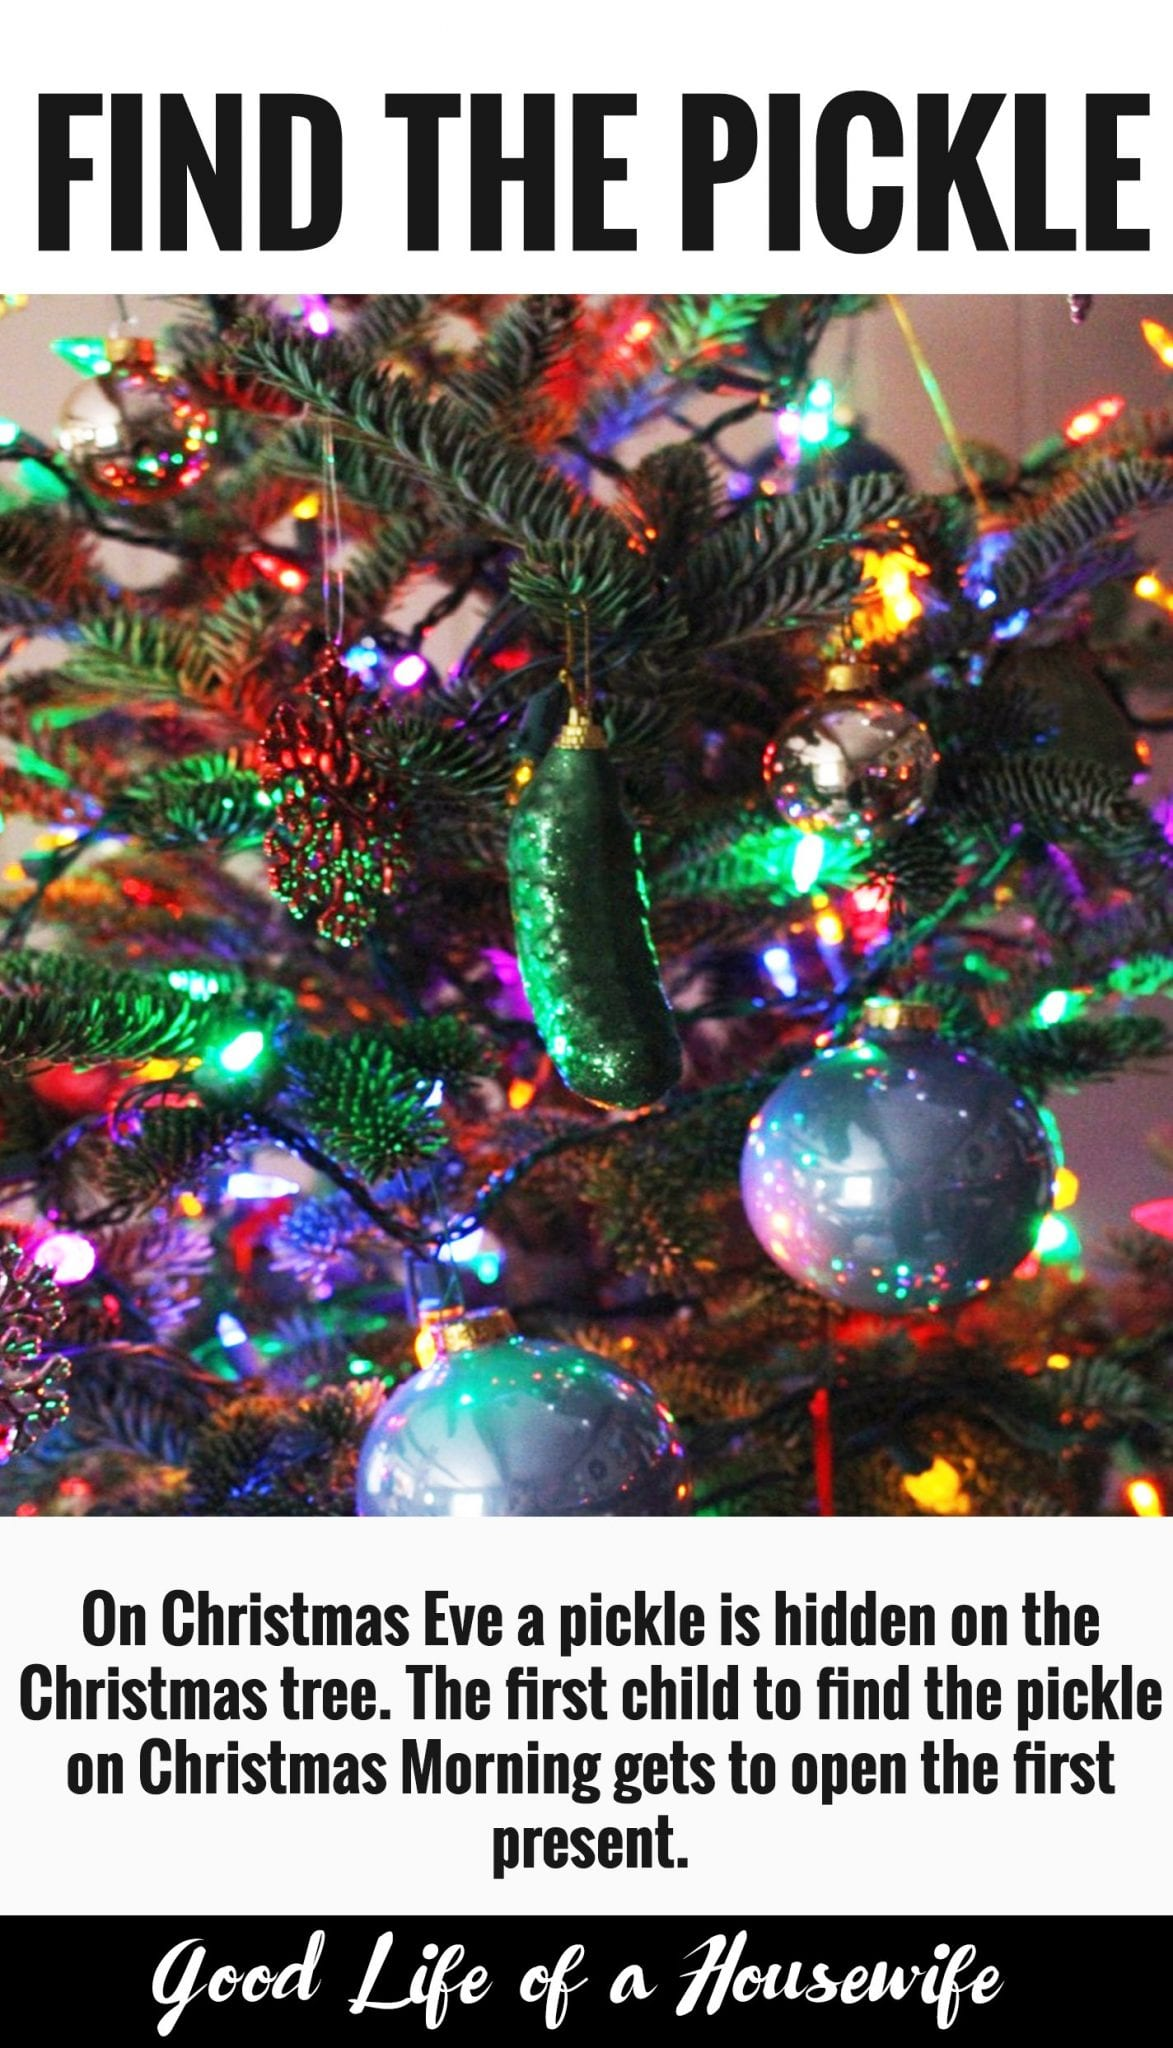 Another German Christmas tradition. A pickle ornament is hidden on the tree Christmas Eve. When the kids wake up, the first child to find the pickle gets to open the first present.